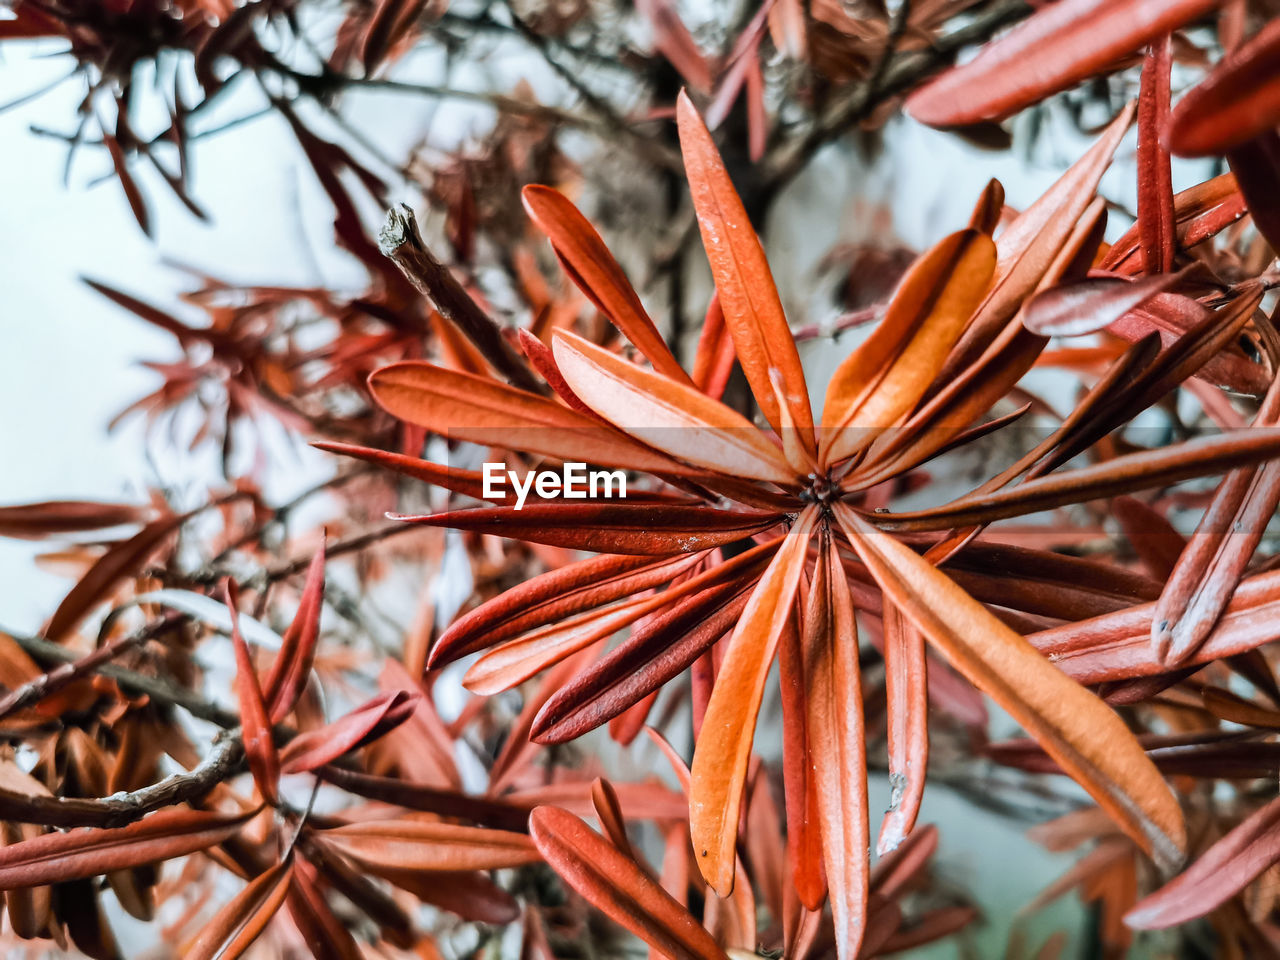 plant, focus on foreground, close-up, no people, beauty in nature, growth, selective focus, nature, day, freshness, vulnerability, orange color, fragility, tranquility, brown, dry, outdoors, flower, flowering plant, tree, flower head, leaves